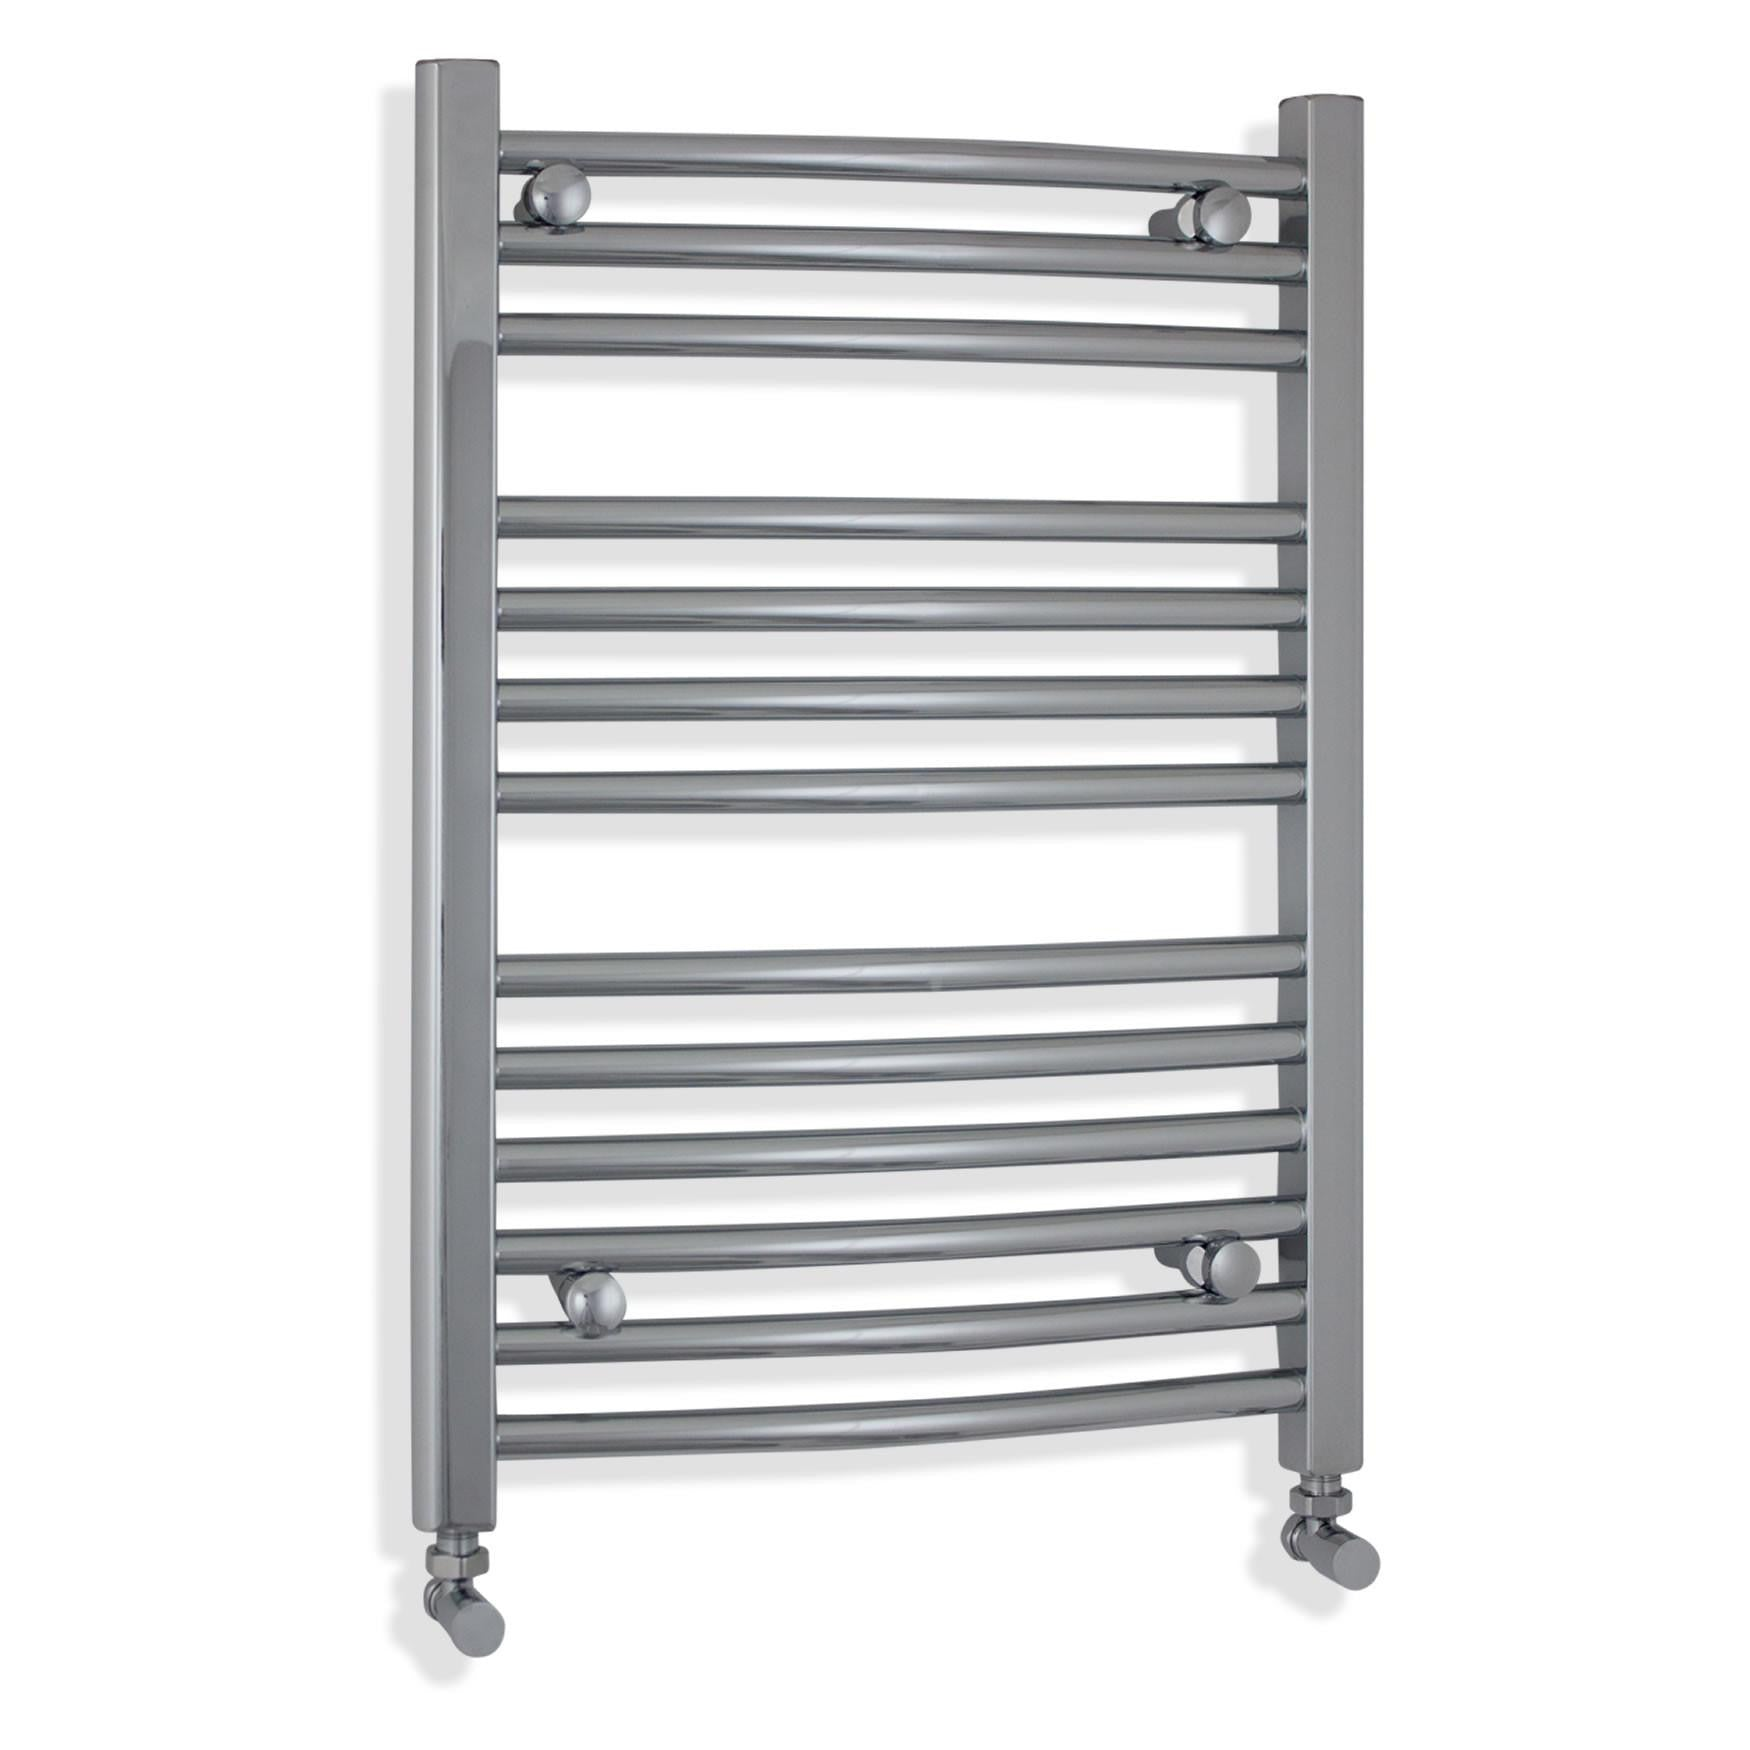 500mm Wide 700mm High Chrome Towel Rail Radiator With Angled Valve